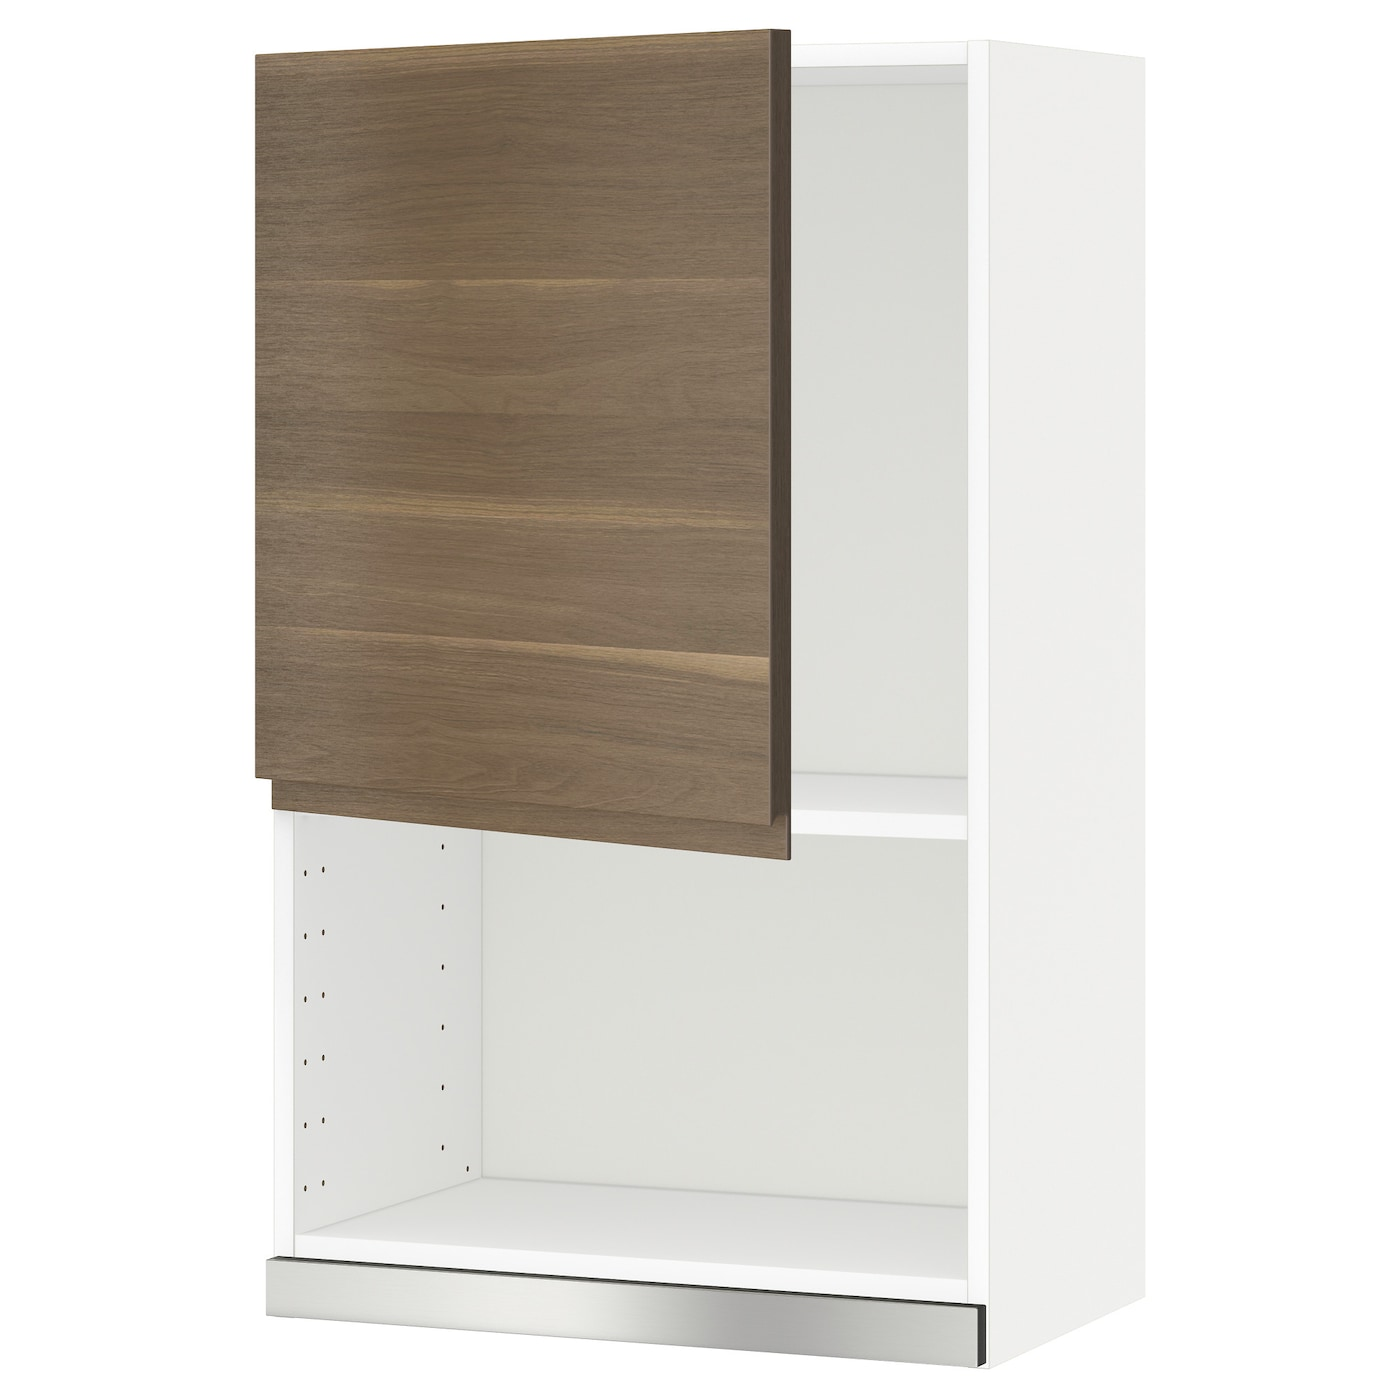 tall pantry wall with surprising table stock home lowes for size kitchen walmart ikea microwave depot at shelf full hutch in cabinet of cabinets carts stand